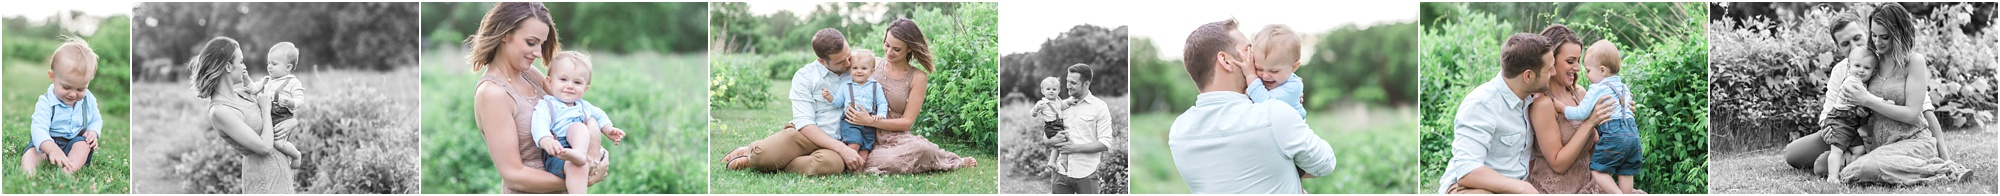 Family photo session contest in West Hartford, Simsbury, Canton, Avon and Farmington Valley CT.